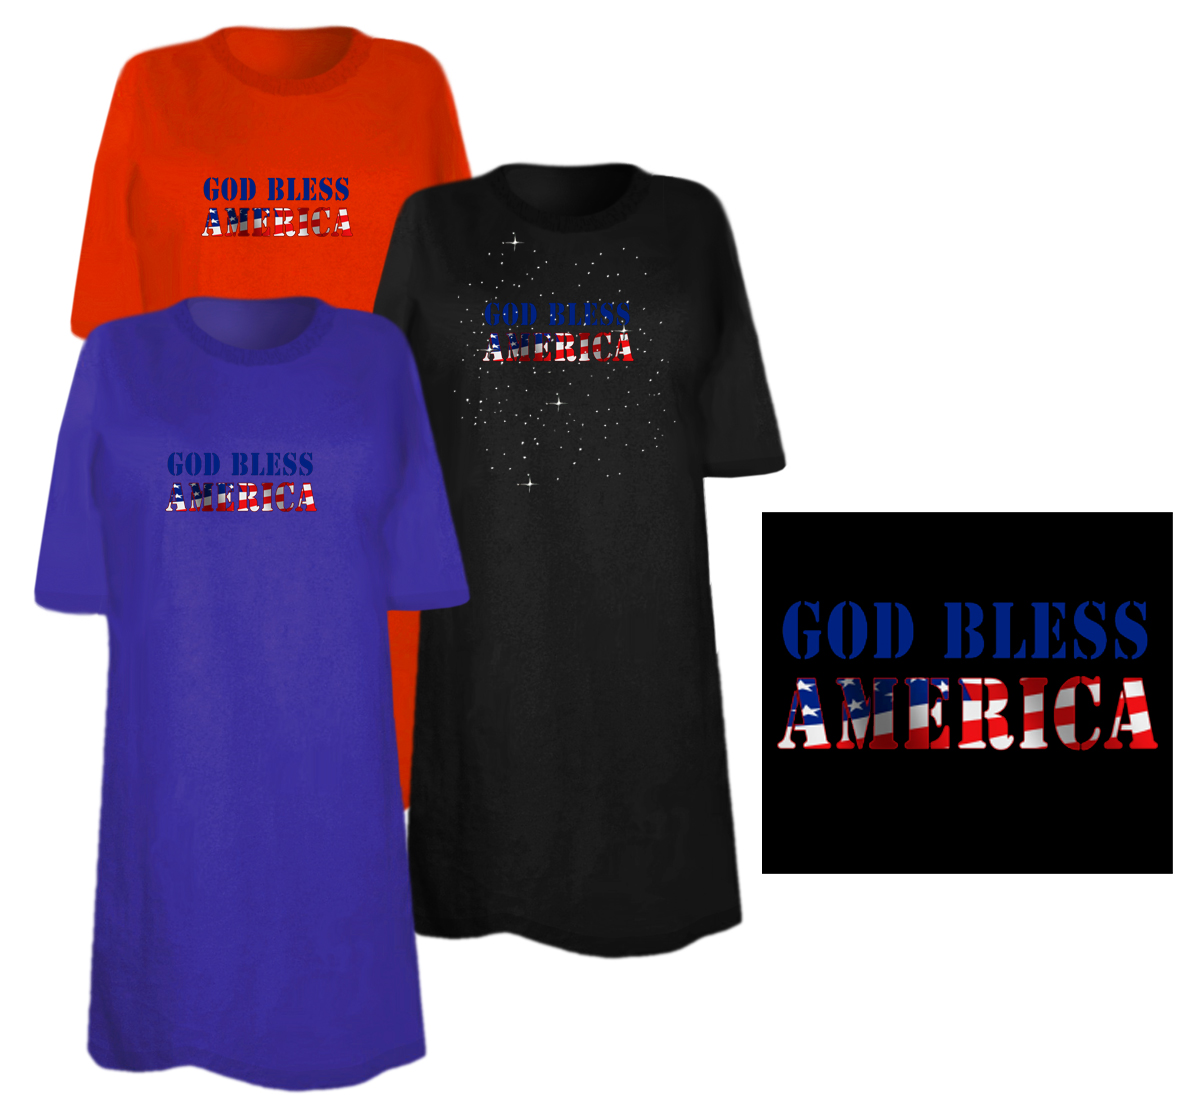 Sale god bless america plus size supersize t shirts s m for 3x shirts on sale